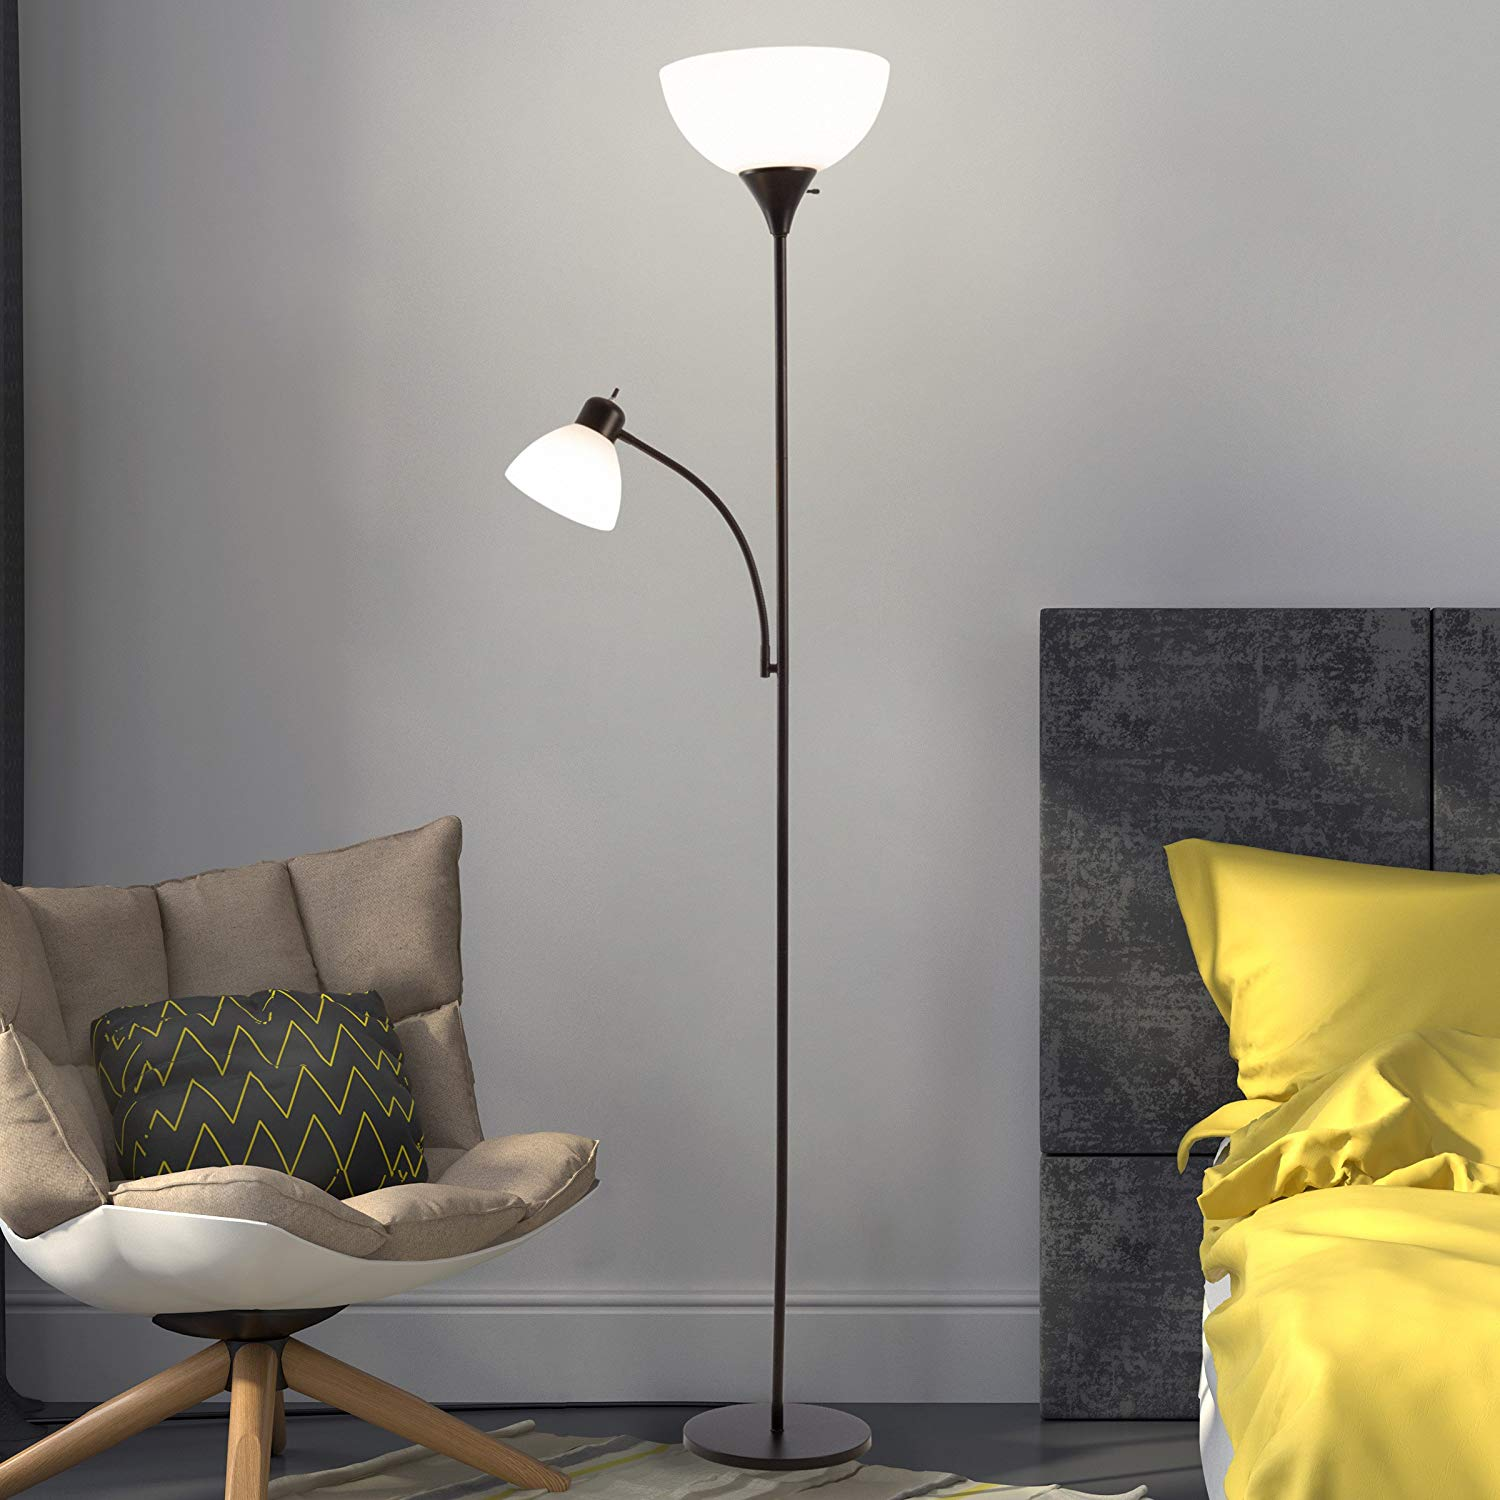 Lavish Home 72-TORCH-4 4 Torchiere Floor Lamp with Reading Light-Sturdy Metal Base, Heat Resistant Plastic Shade-Energy Saving LED Bulbs Included, Black Finish